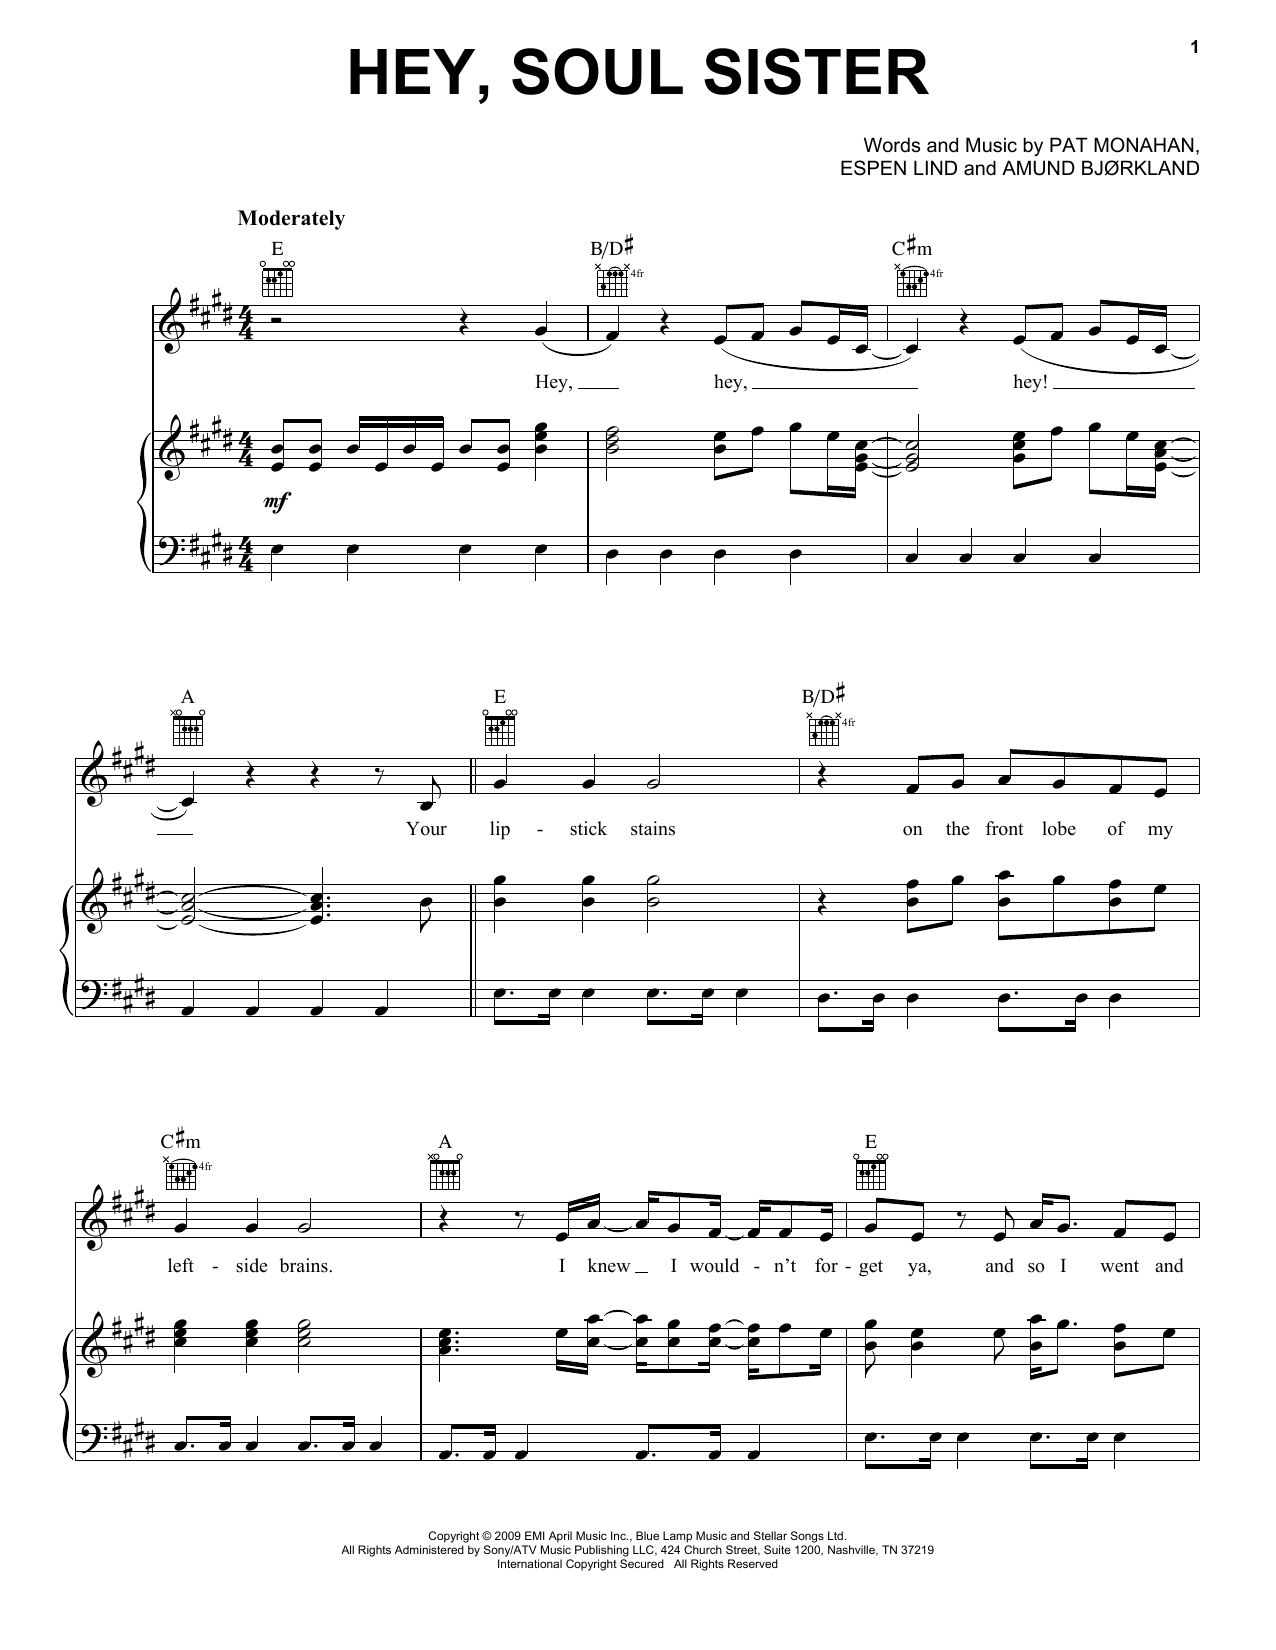 Train Hey, Soul Sister sheet music notes and chords. Download Printable PDF.